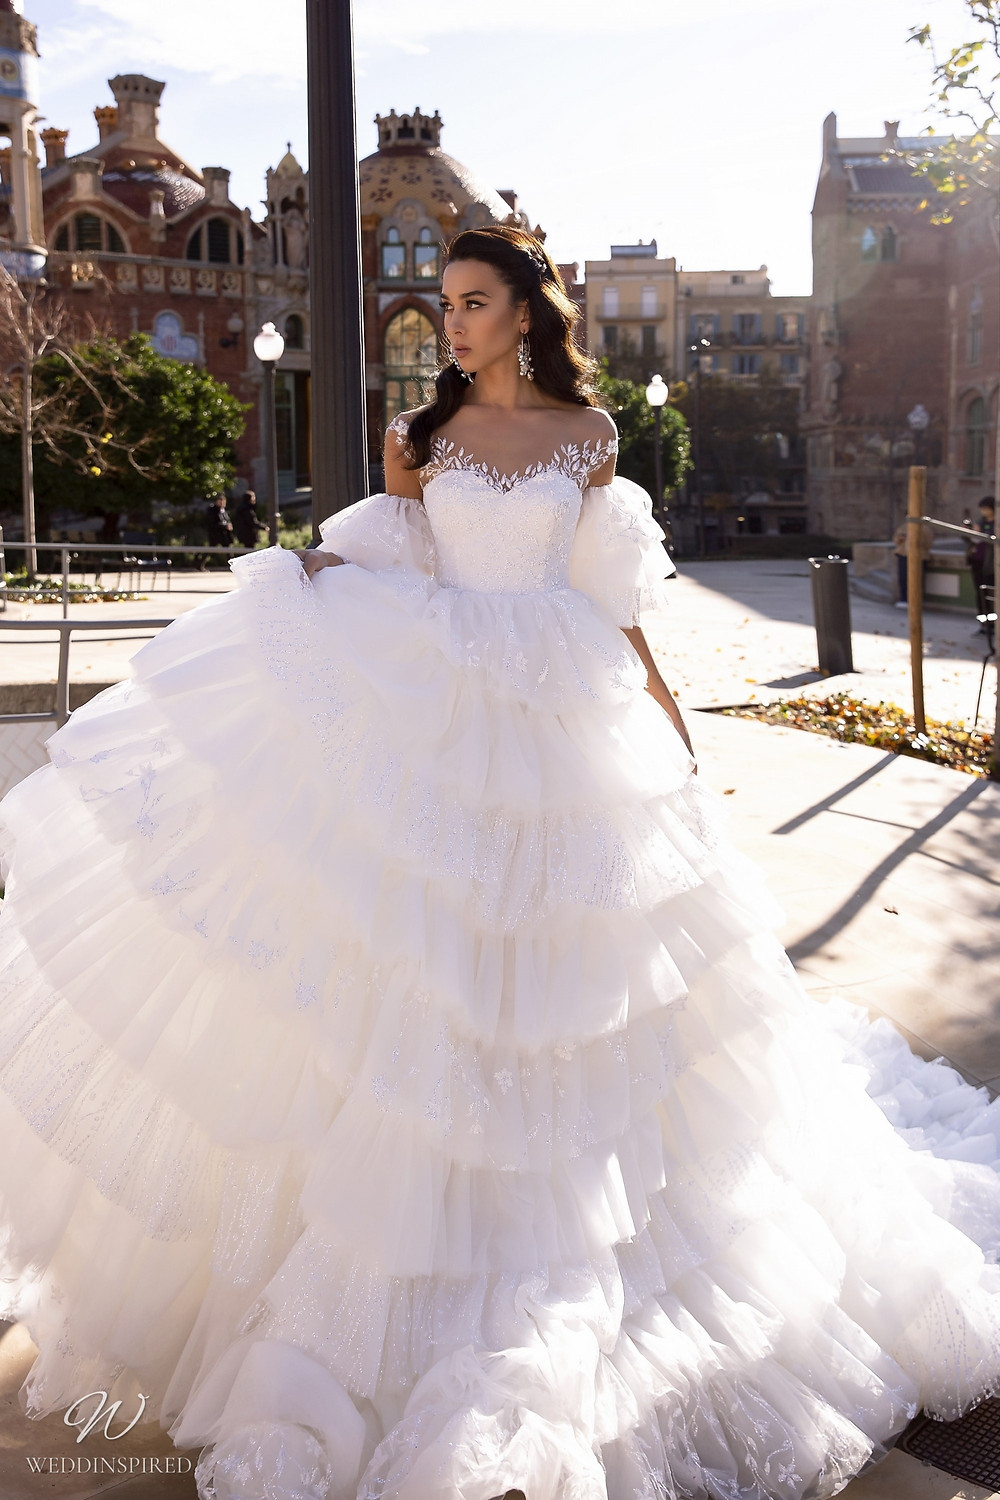 A Maks Mariano off the shoulder princess ball gown wedding dress with layered ruffle skirt